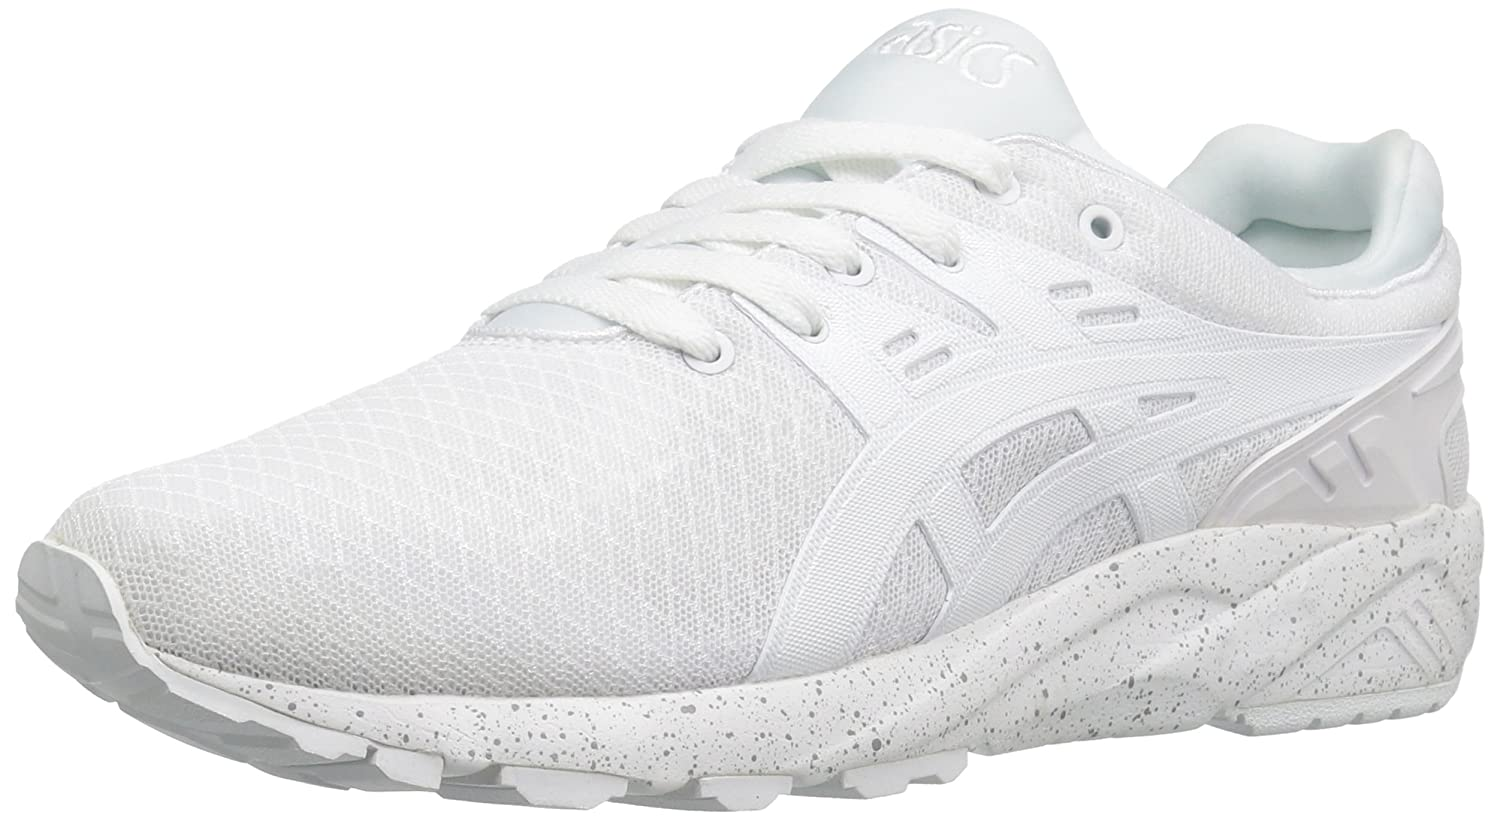 ASICS Mens Gel-Kayano Trainer Evo Fashion Sneaker